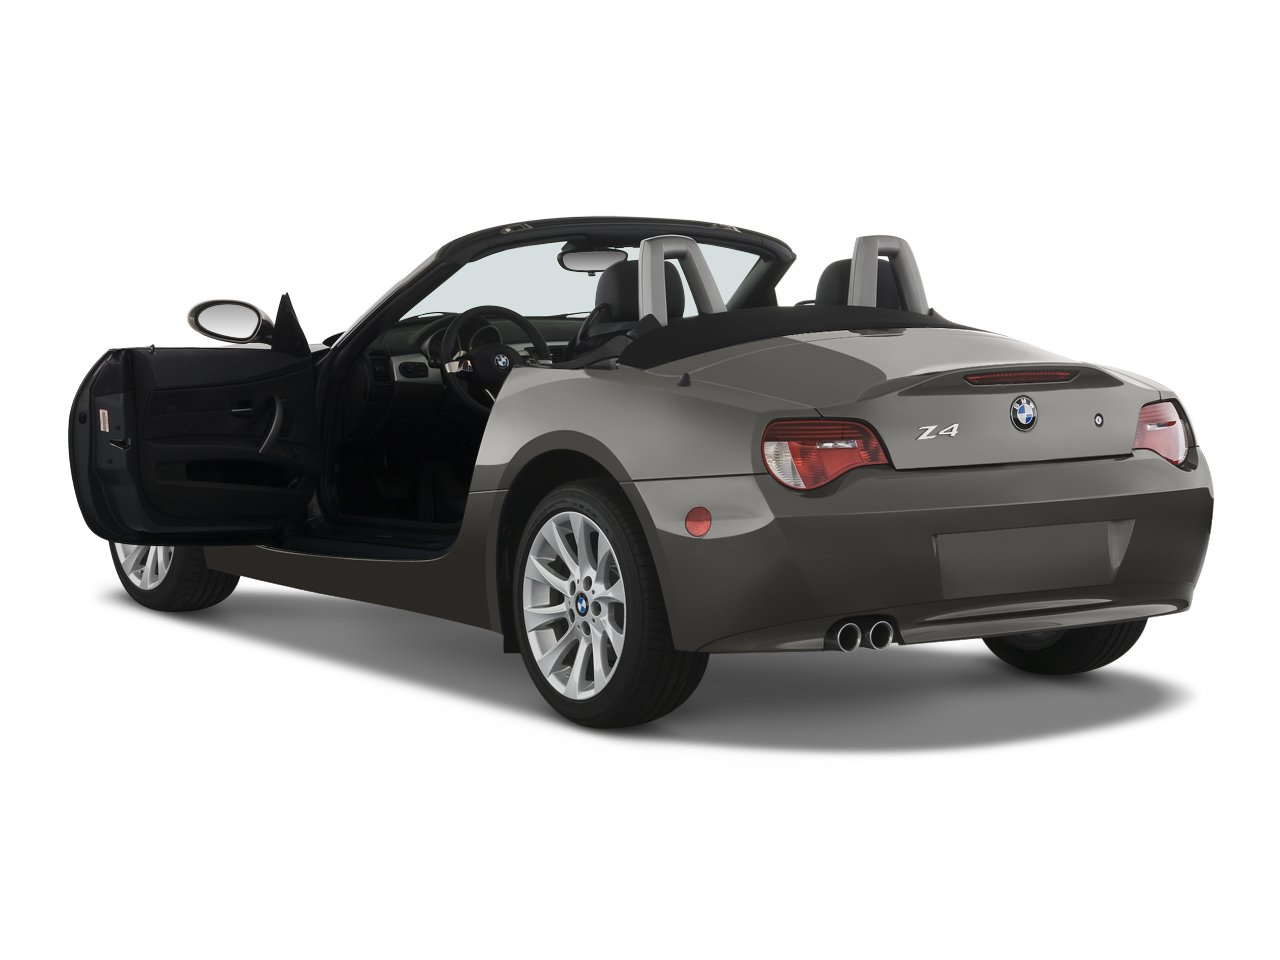 2008 bmw z4 coupe bmw sports coupe review automobile. Black Bedroom Furniture Sets. Home Design Ideas